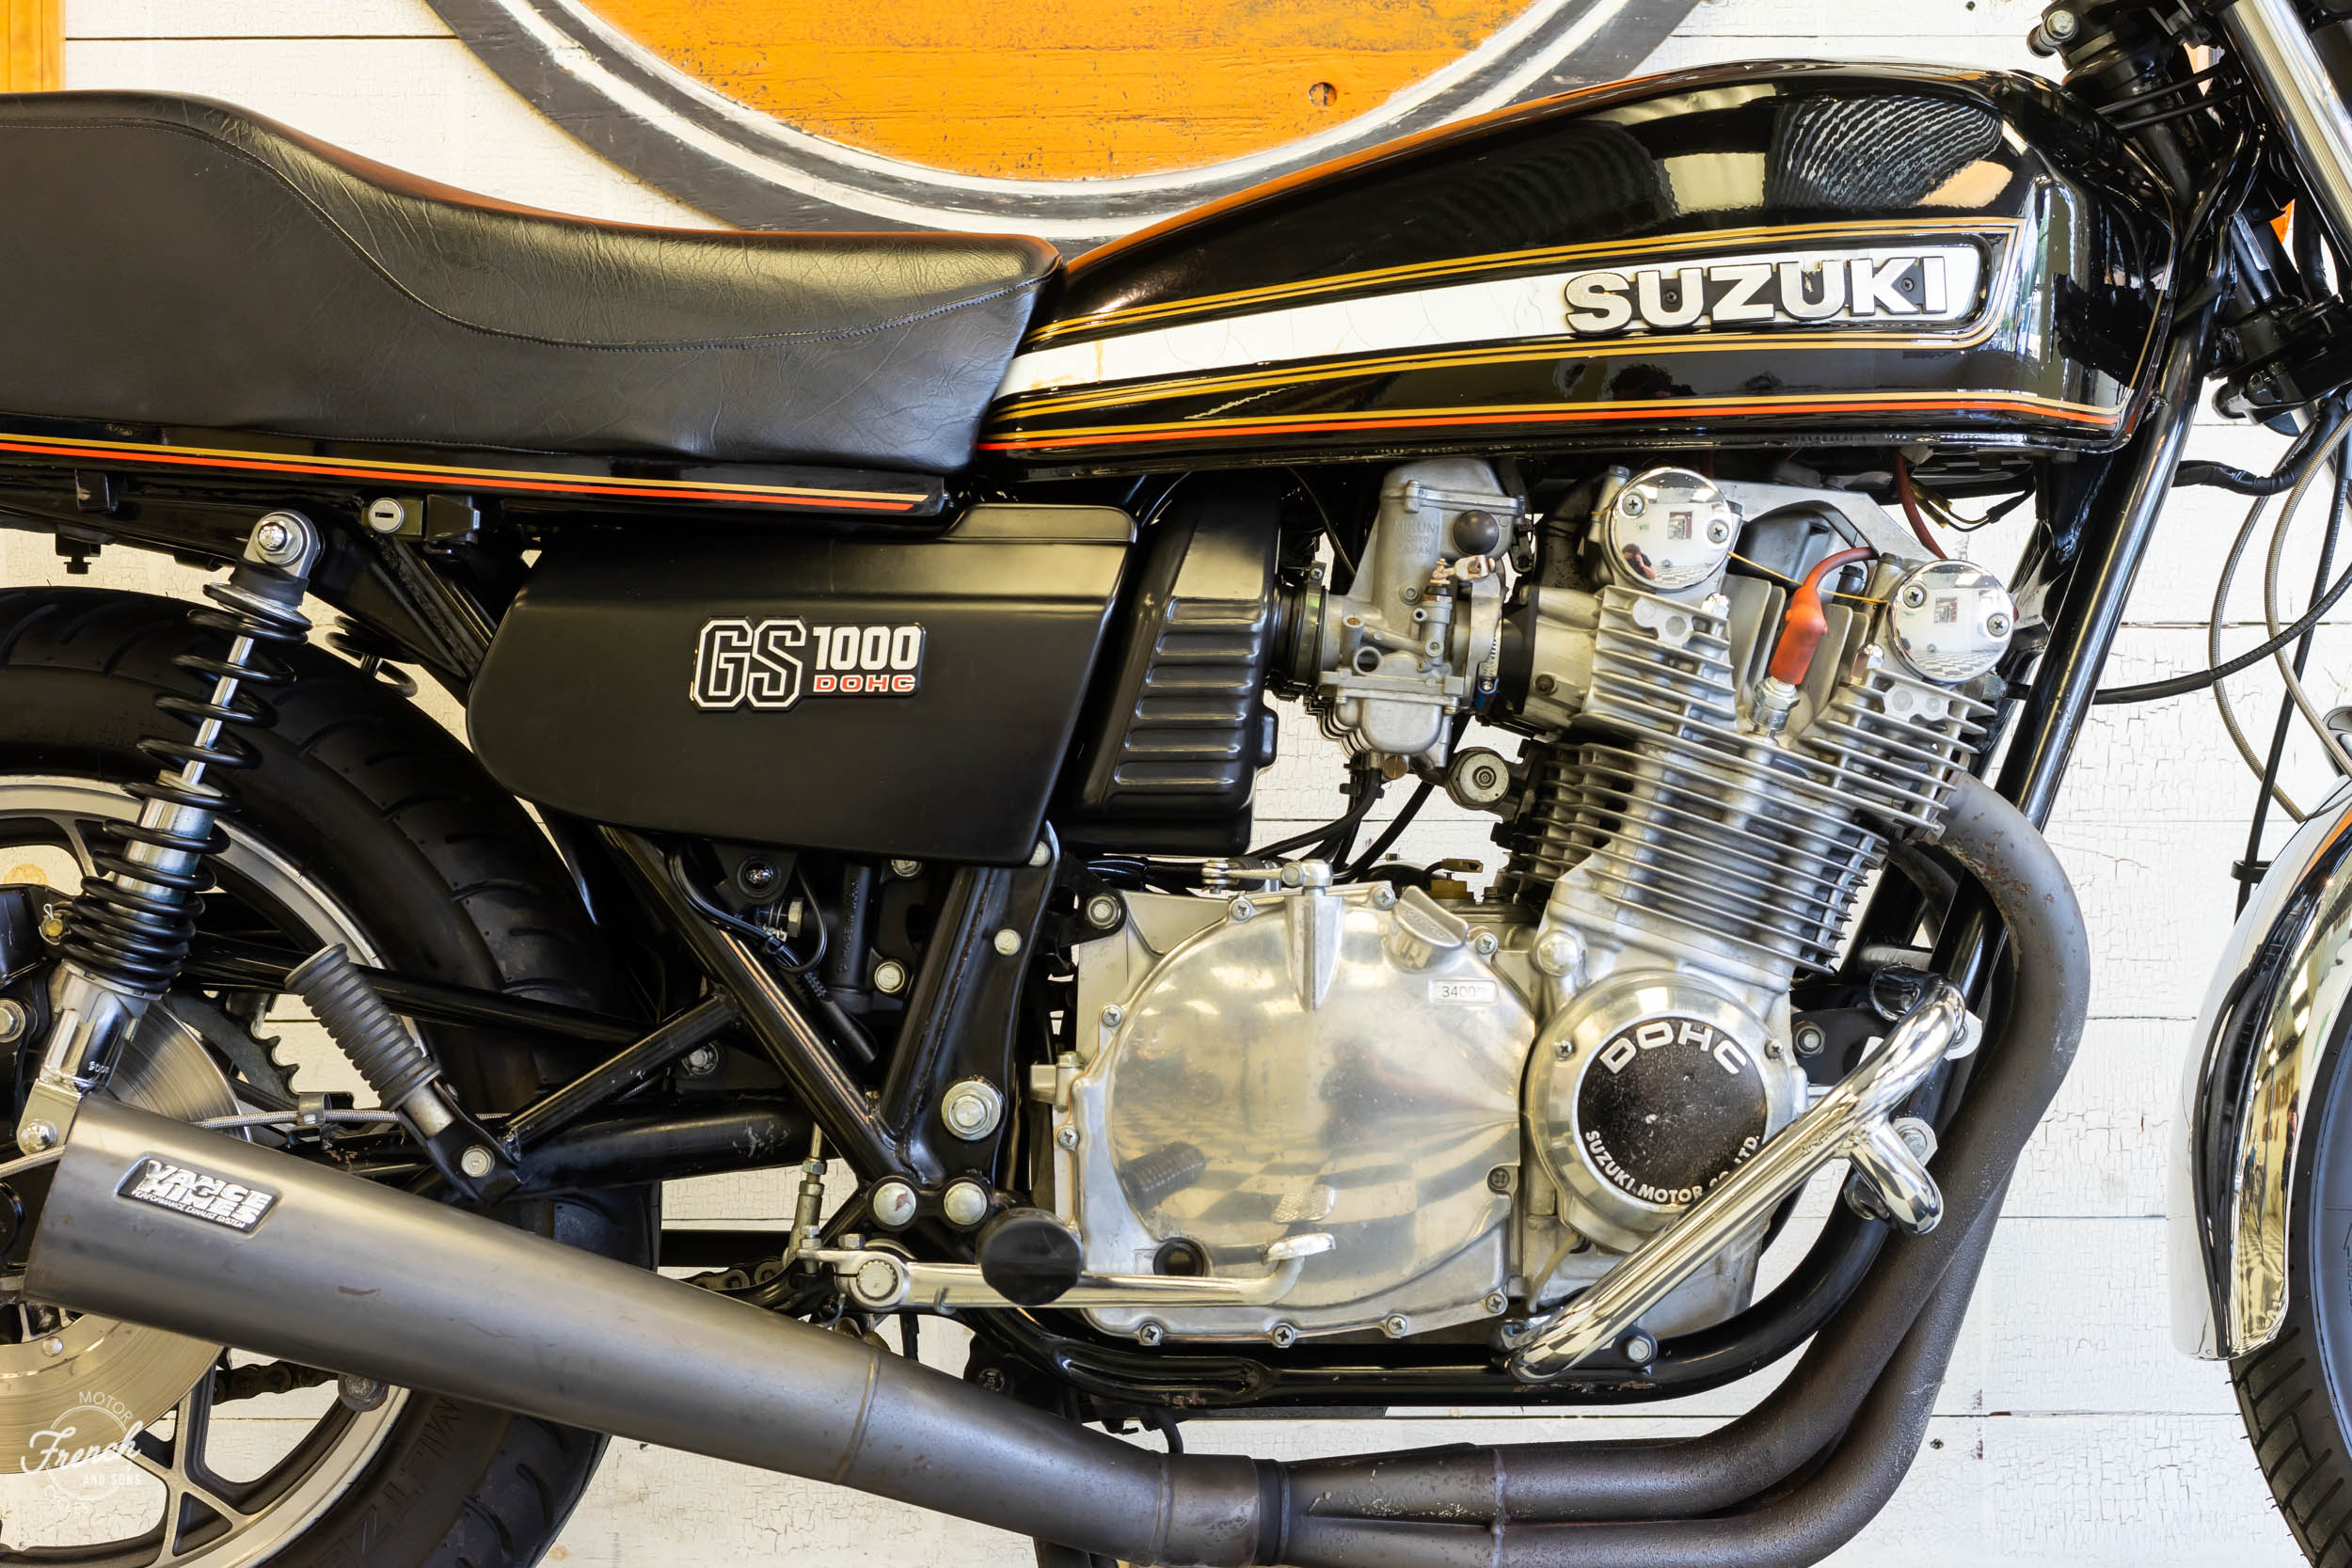 1978_suzuki_gs1000 (4 of 34).jpg